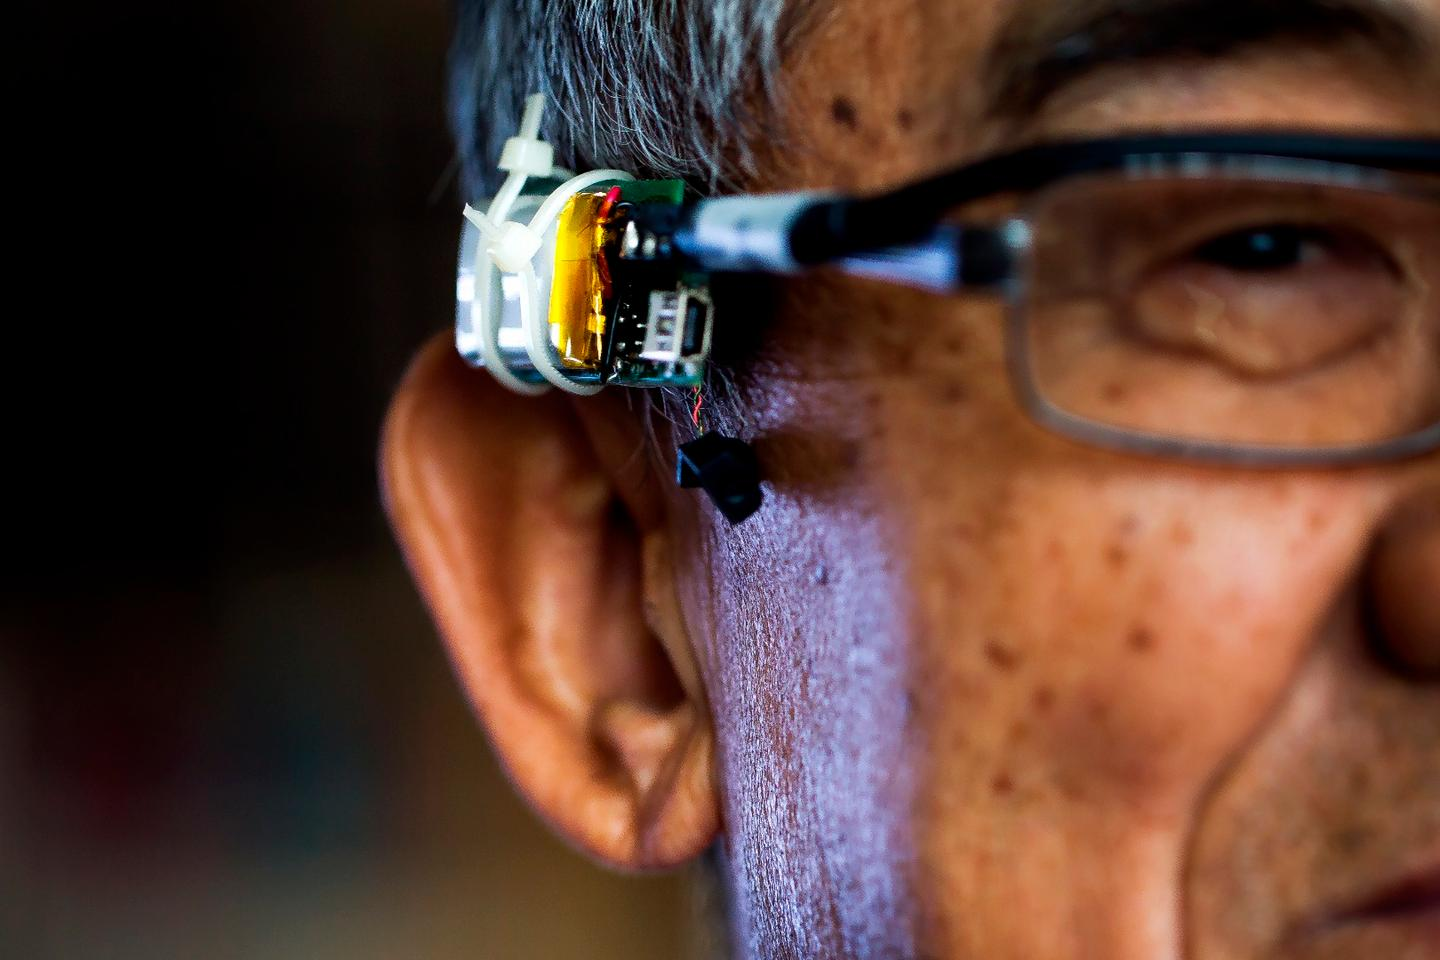 A prototype VAuth eyeglasses attachment